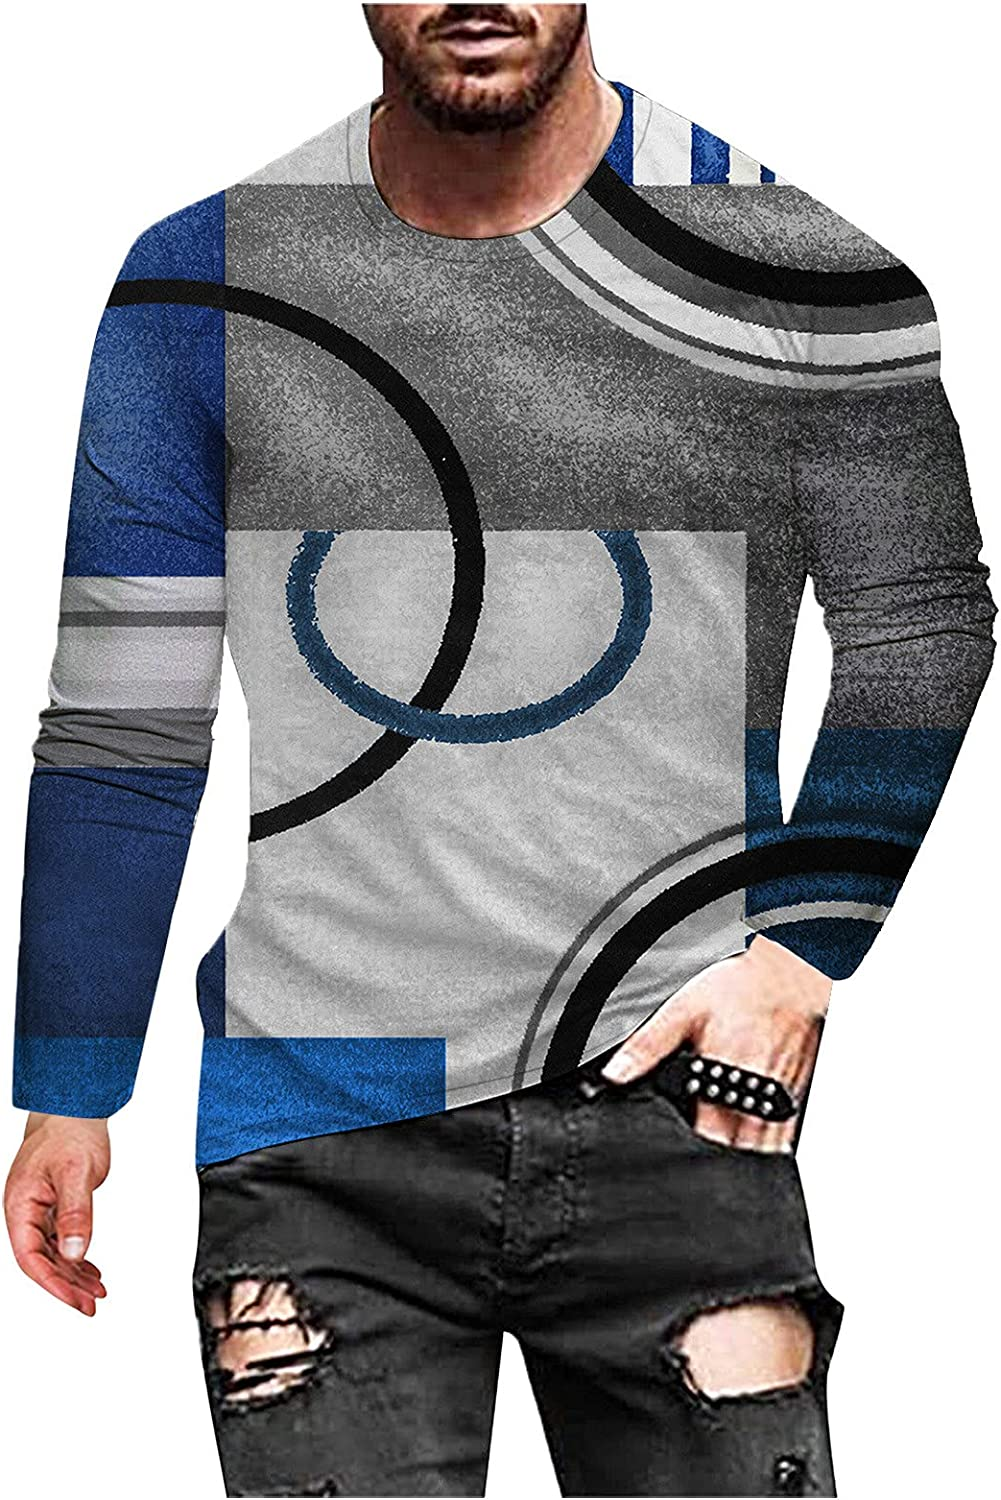 XXBR Soldier Long Sleeve T-shirts for Mens, Fall Street Abstract Art Vintage Print Workout Athletics Crewneck Tee Tops